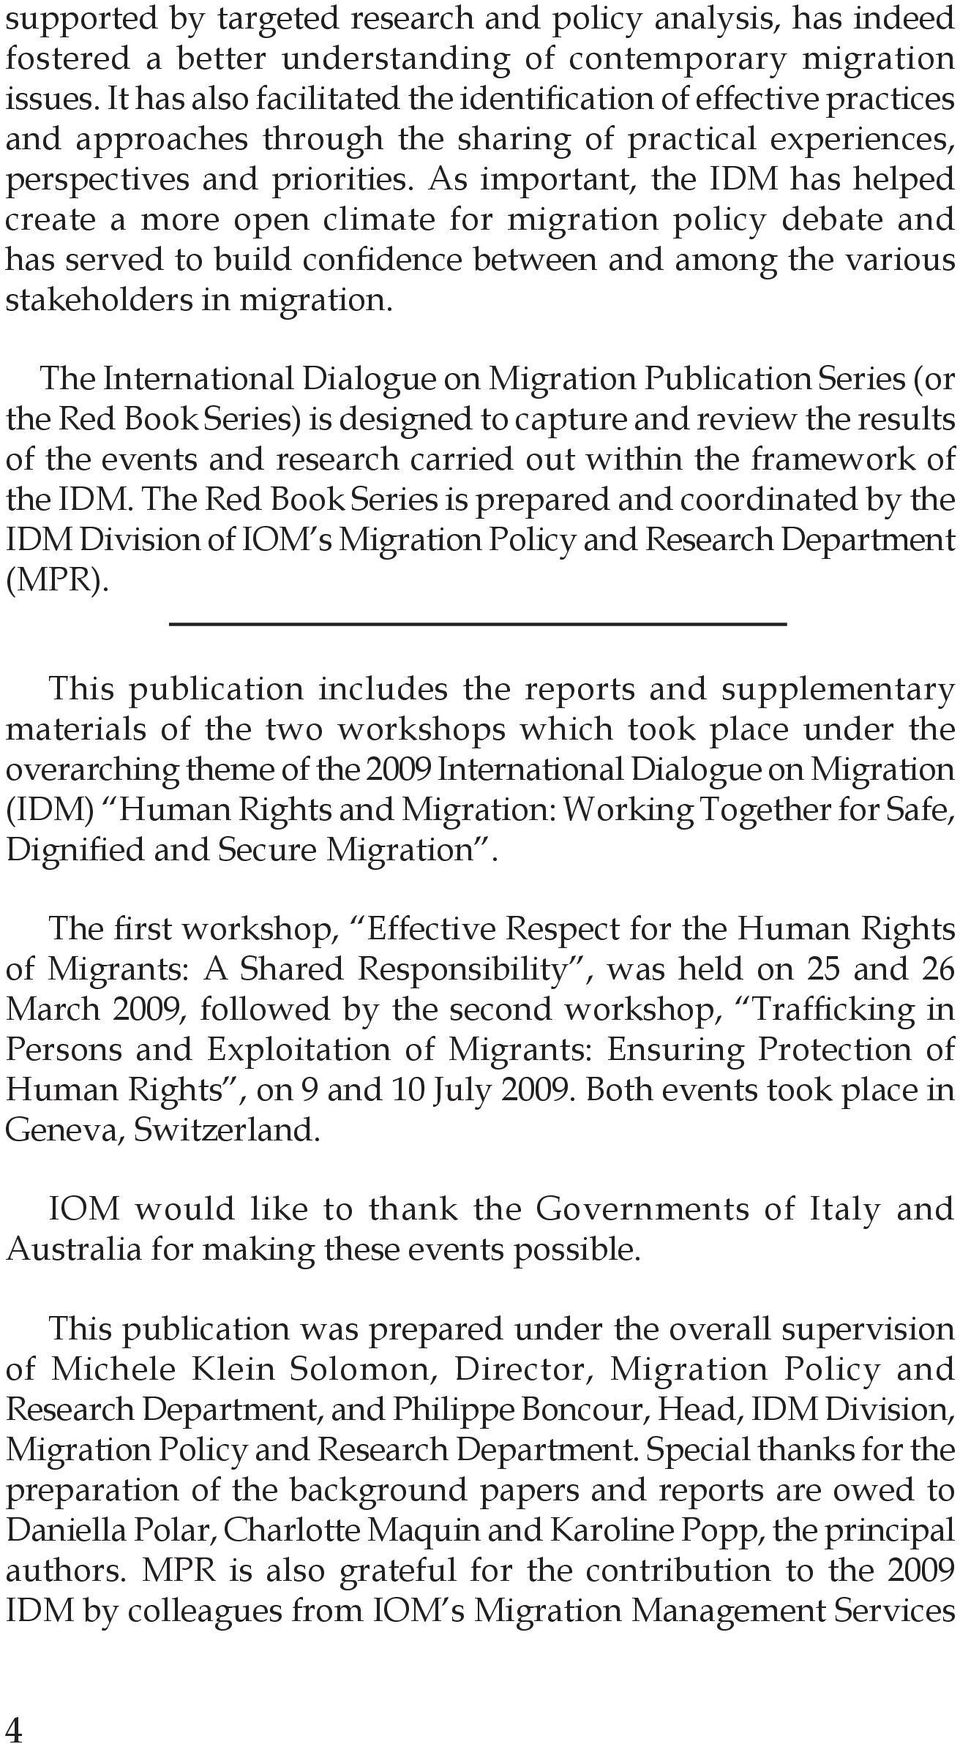 As important, the IDM has helped create a more open climate for migration policy debate and has served to build confidence between and among the various stakeholders in migration.